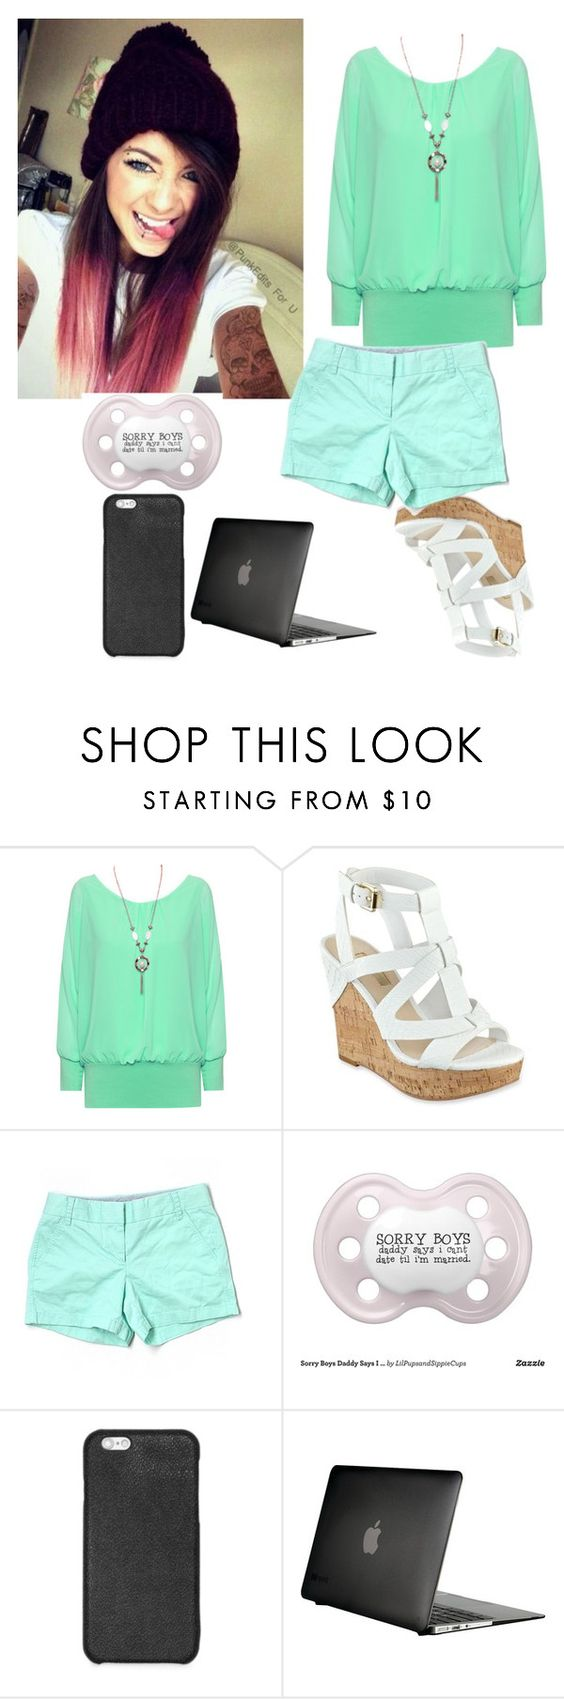 """""""i take papi's phone -giggles-Kayti"""" by to-crazy-for-you-now-backup ❤ liked on Polyvore featuring WearAll, GUESS, J.Crew, Michael Kors and Speck"""